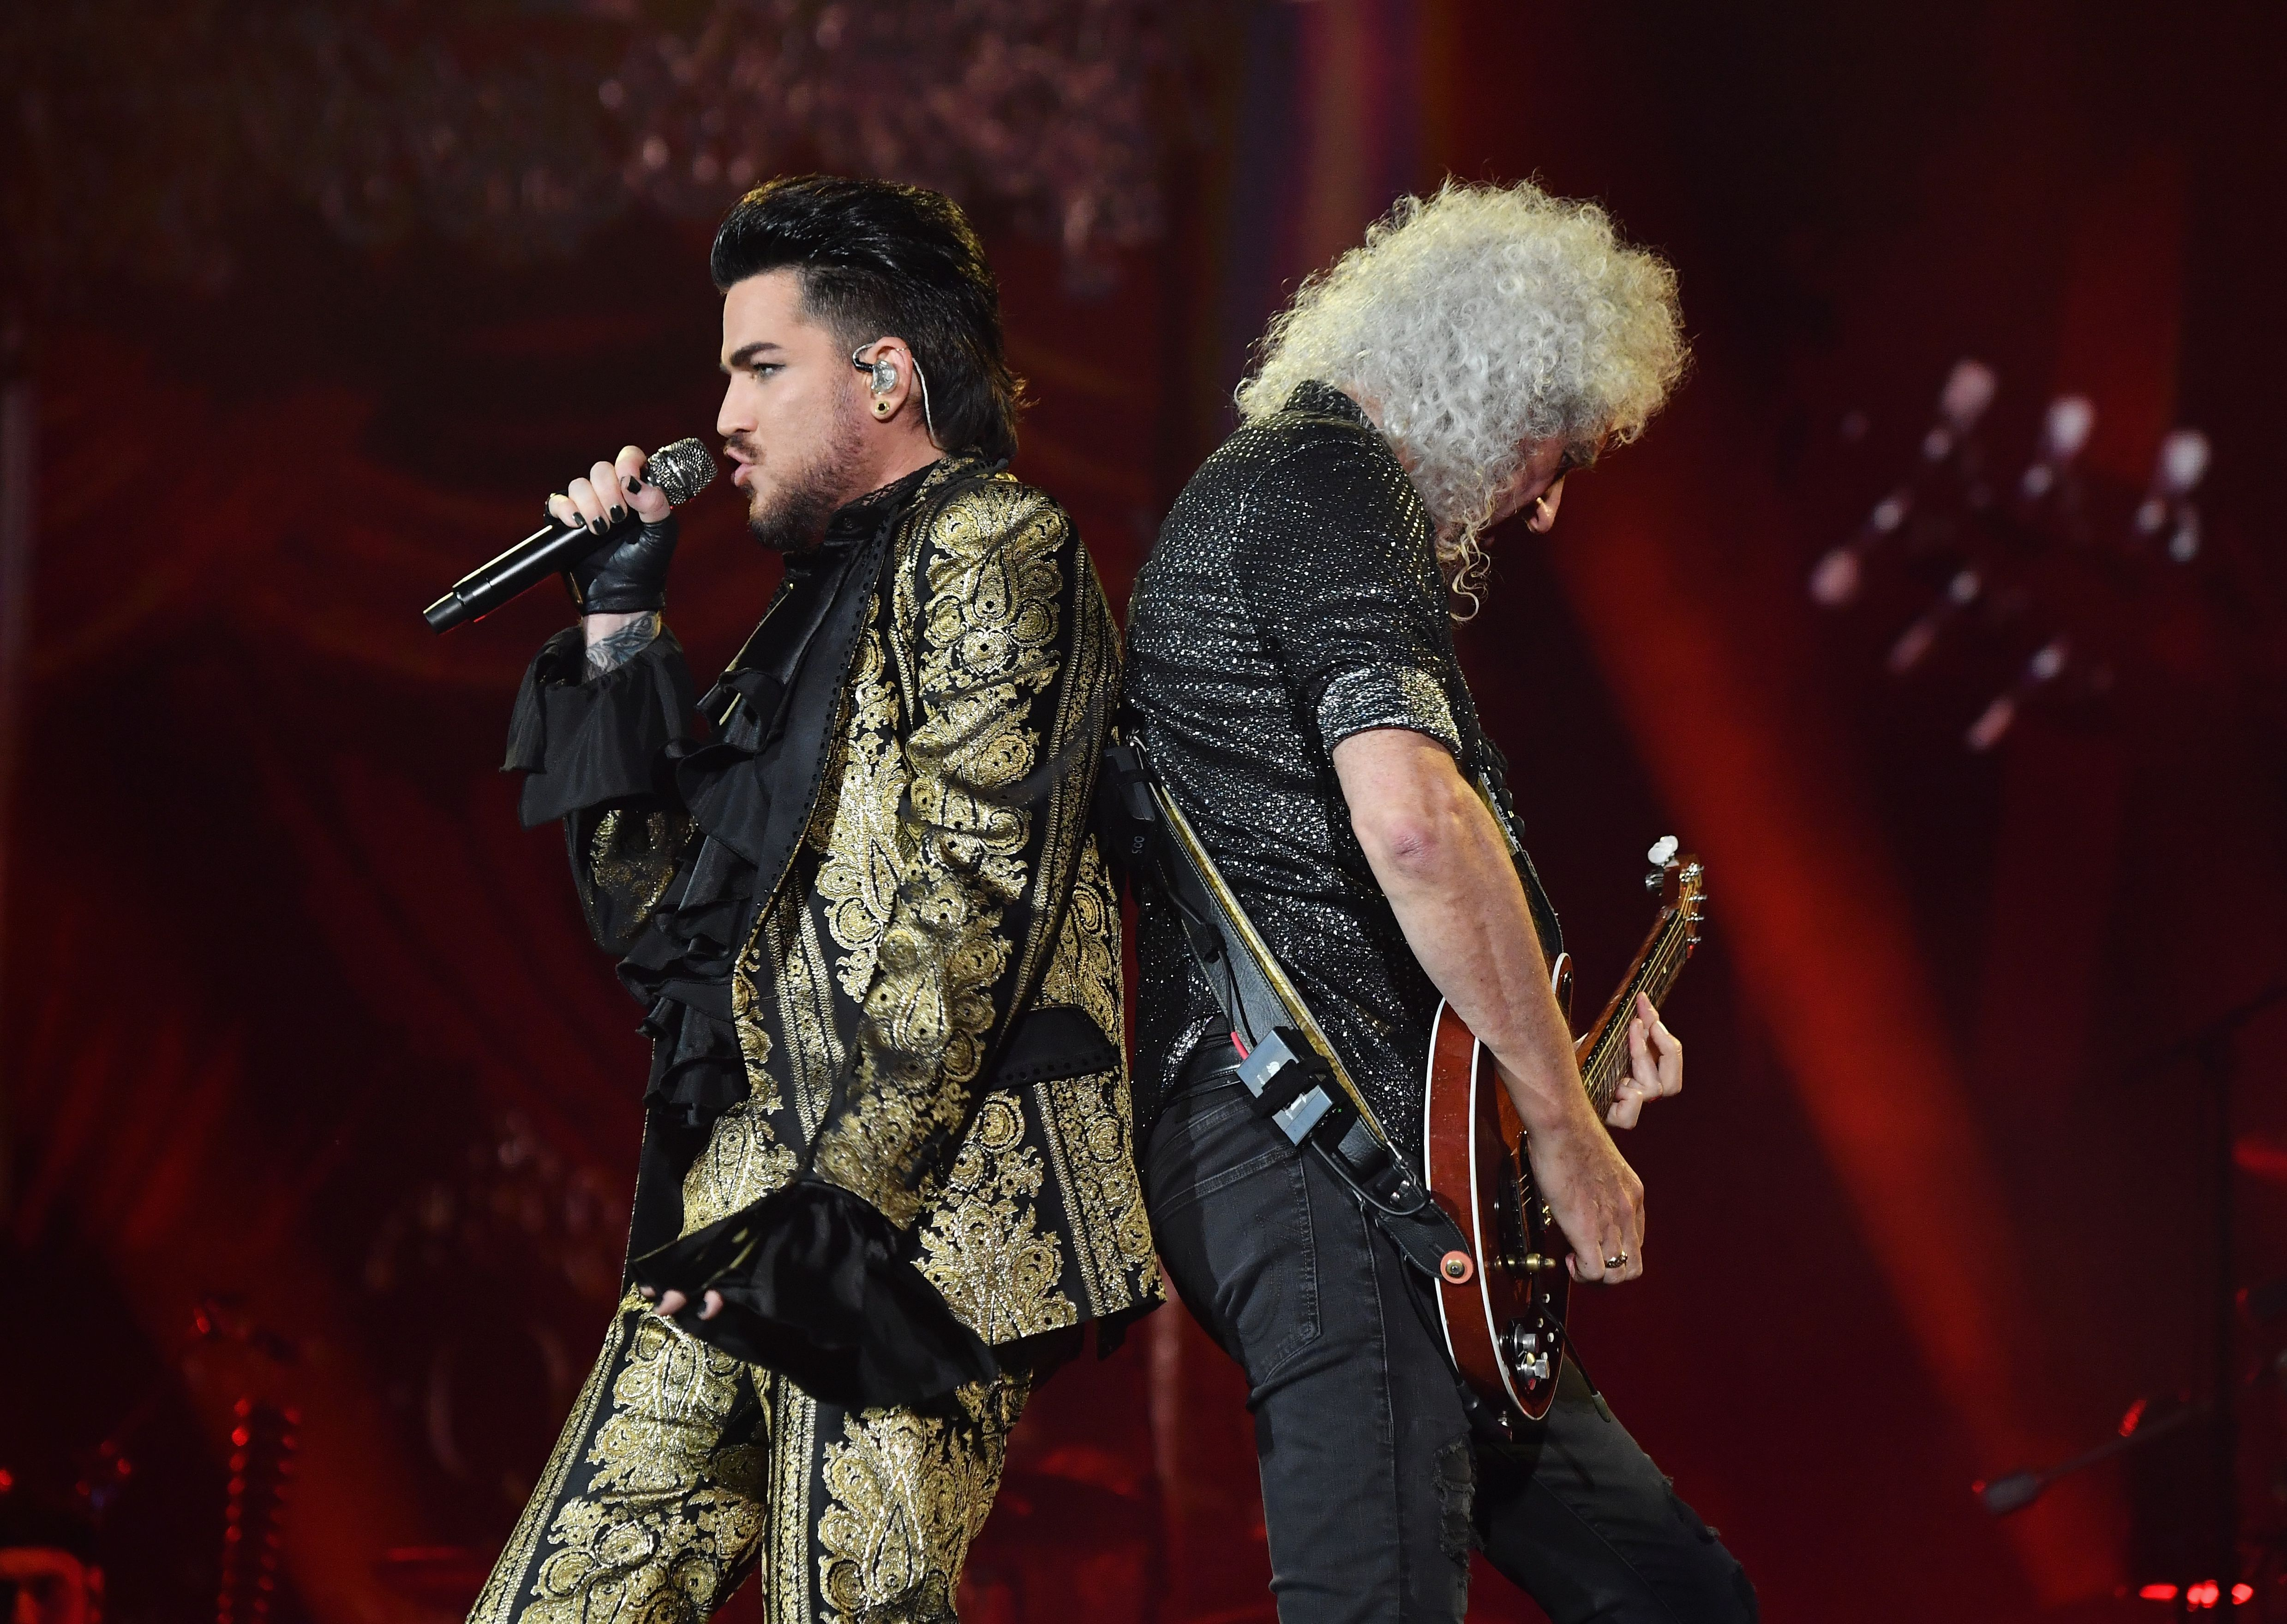 Adam Lambert and Brian May of Queen perform onstage at the 2019 Global Citizen Festival: Power The Movement in Central Park in New York on September 28, 2019. (Photo by Angela Weiss / AFP)        (Photo credit should read ANGELA WEISS/AFP/Getty Images)